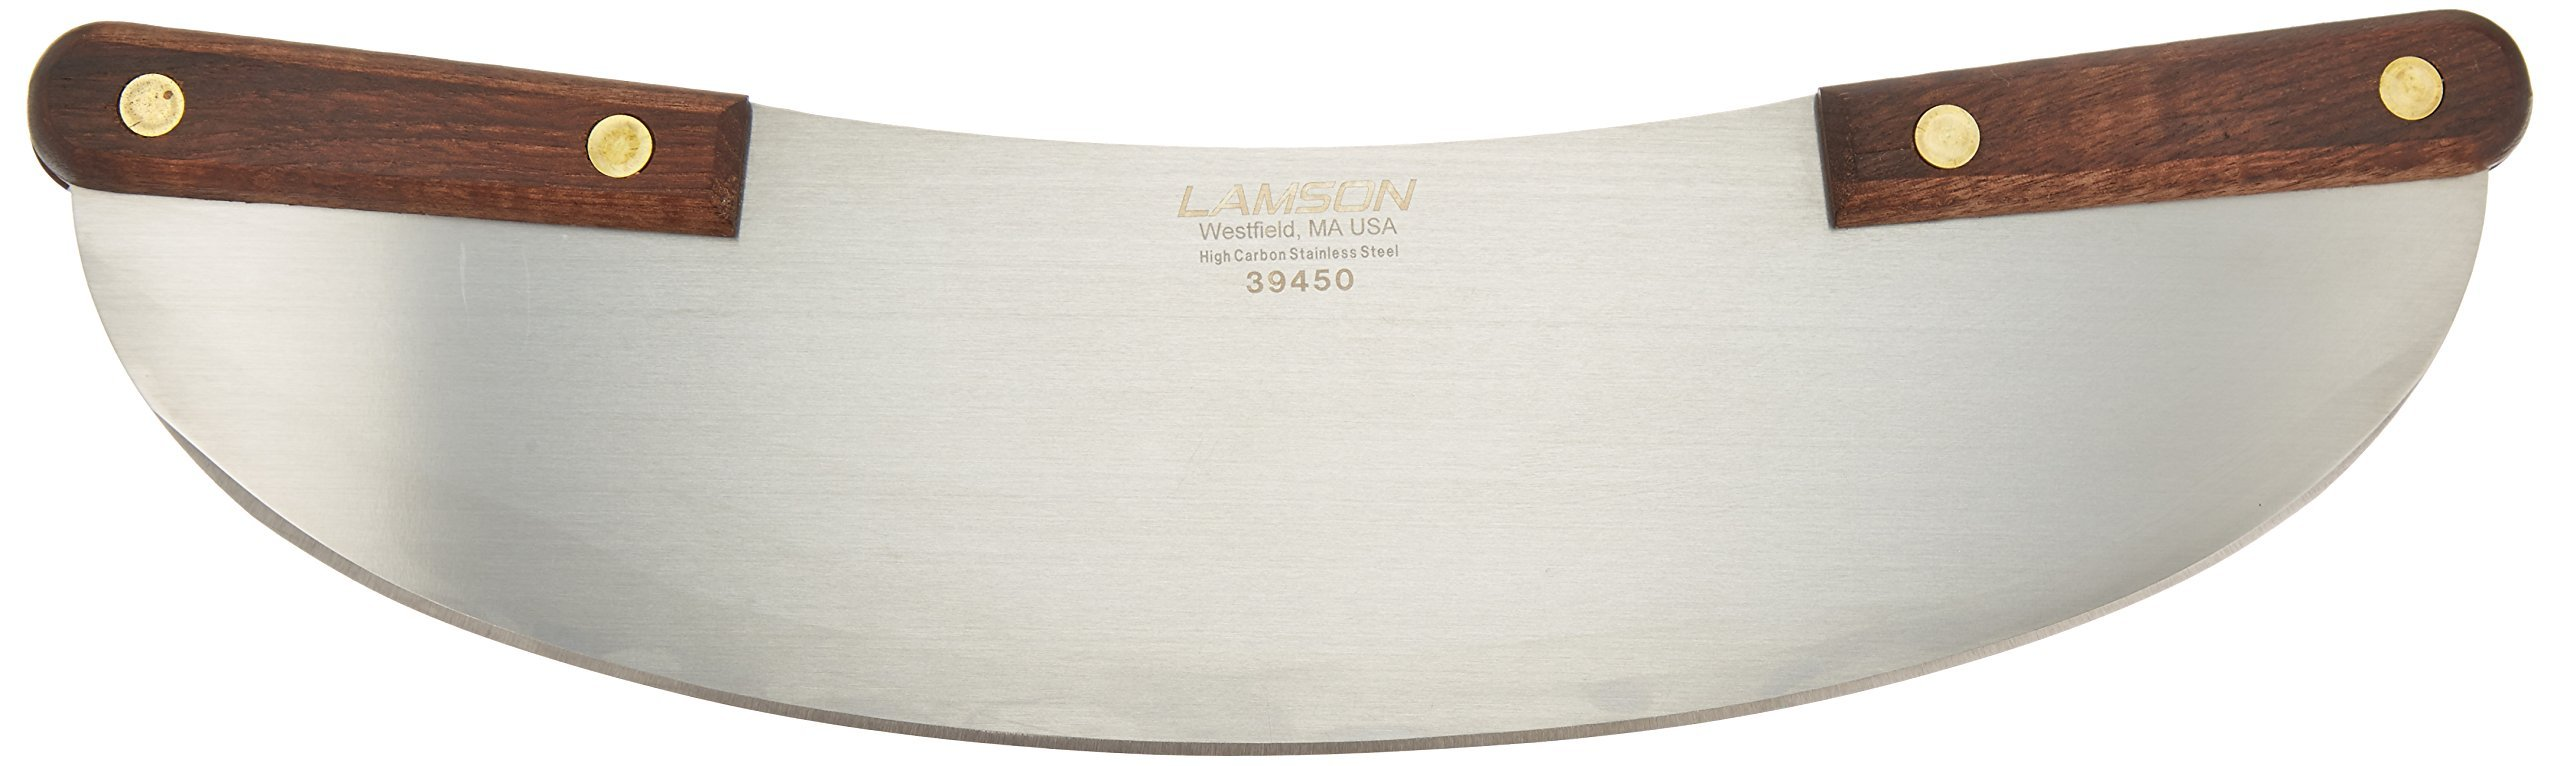 Lamson Pizza Rocker Knife, 13'', Stainless Steel with Riveted Walnut Handle by Lamson